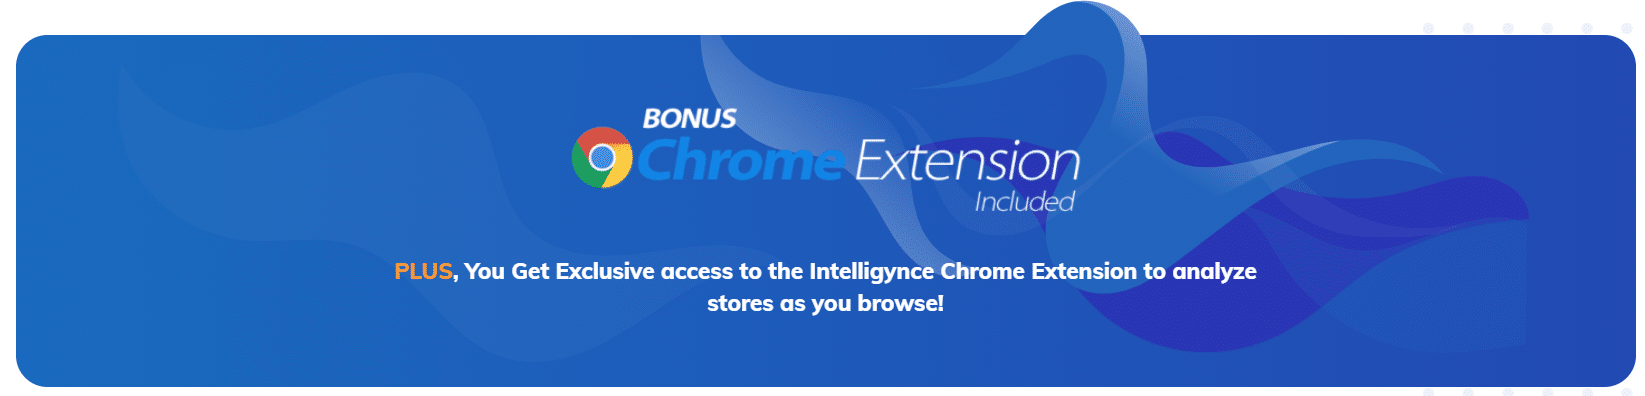 Intelligynce Google Chrome Extension